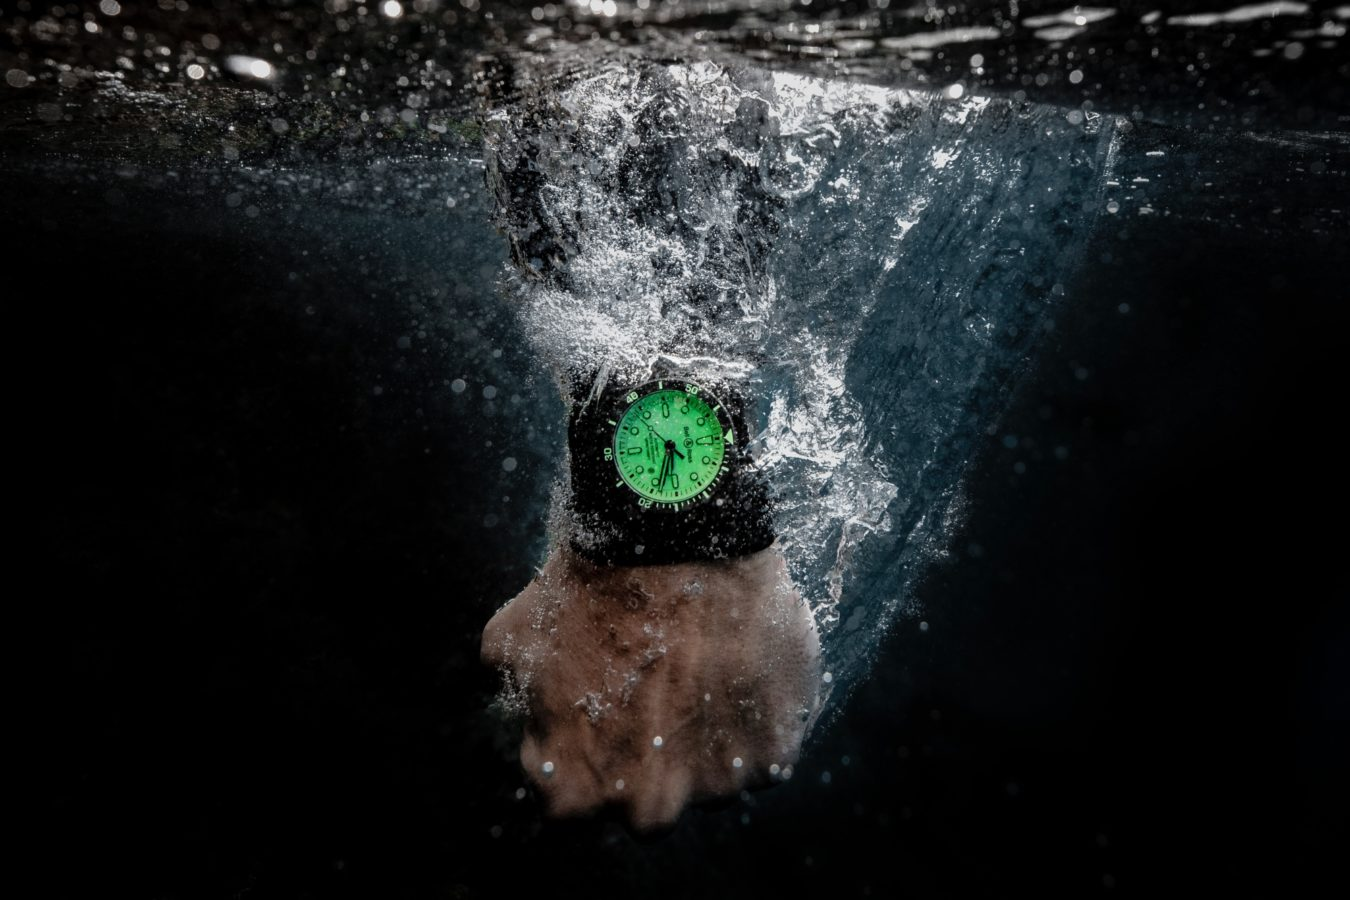 The new Bell & Ross Diver Full Lum makes us want to go for a swim